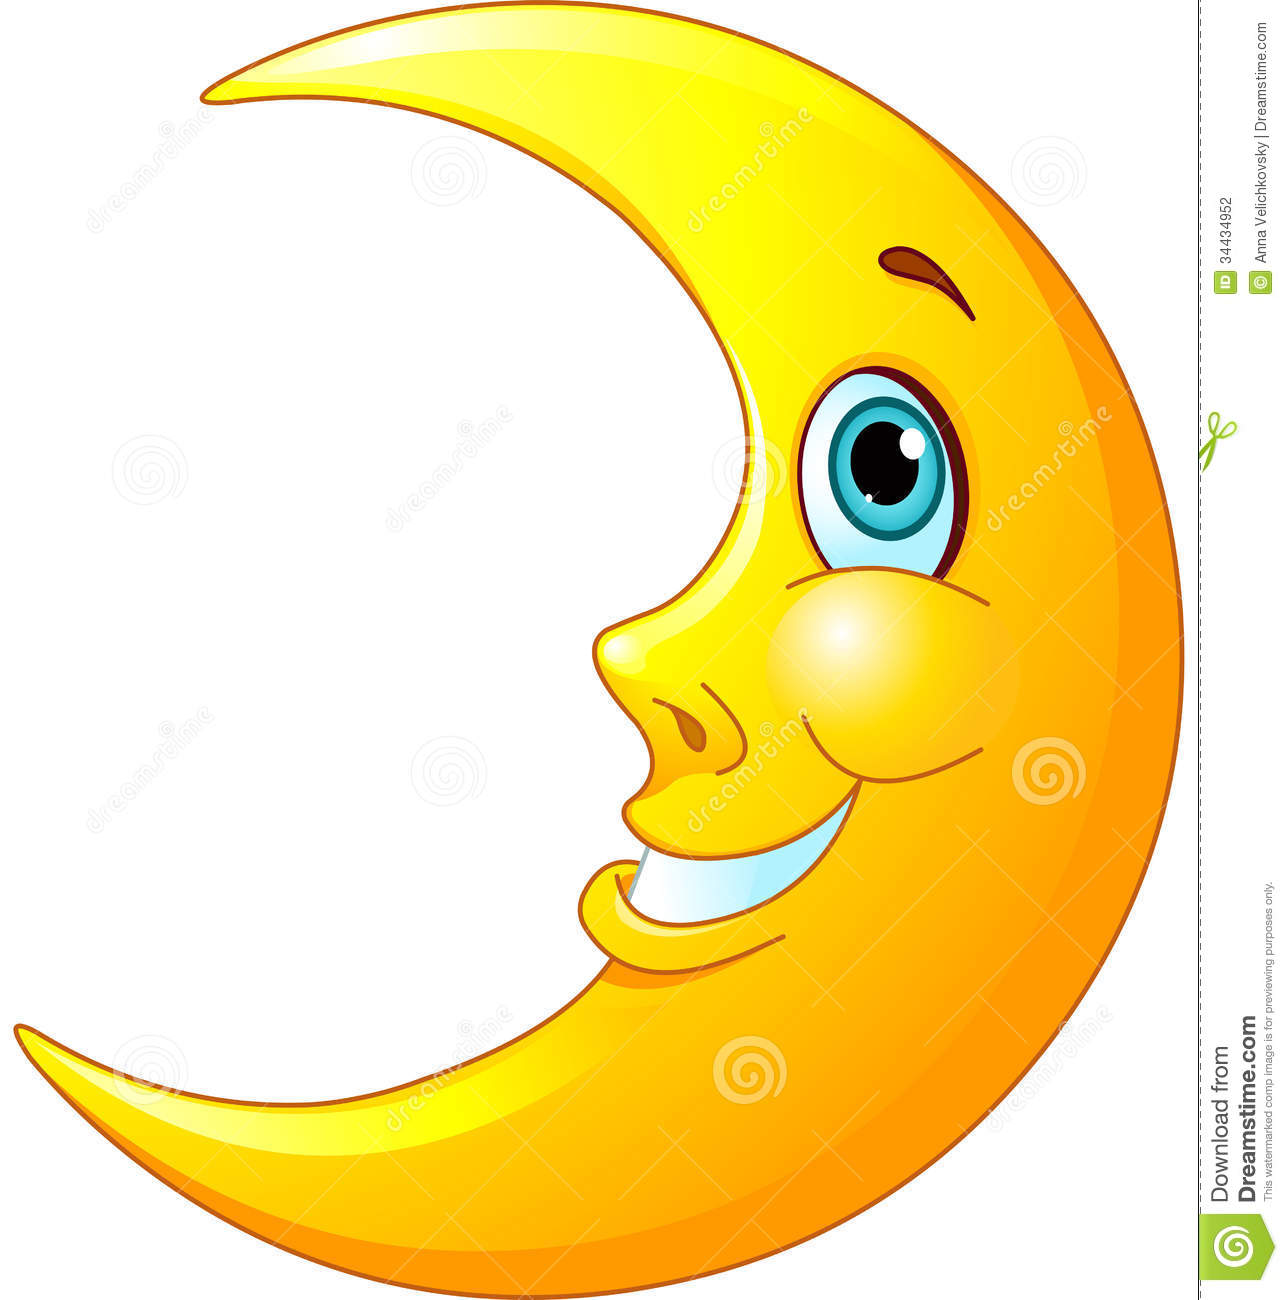 clipart image of moon - photo #21